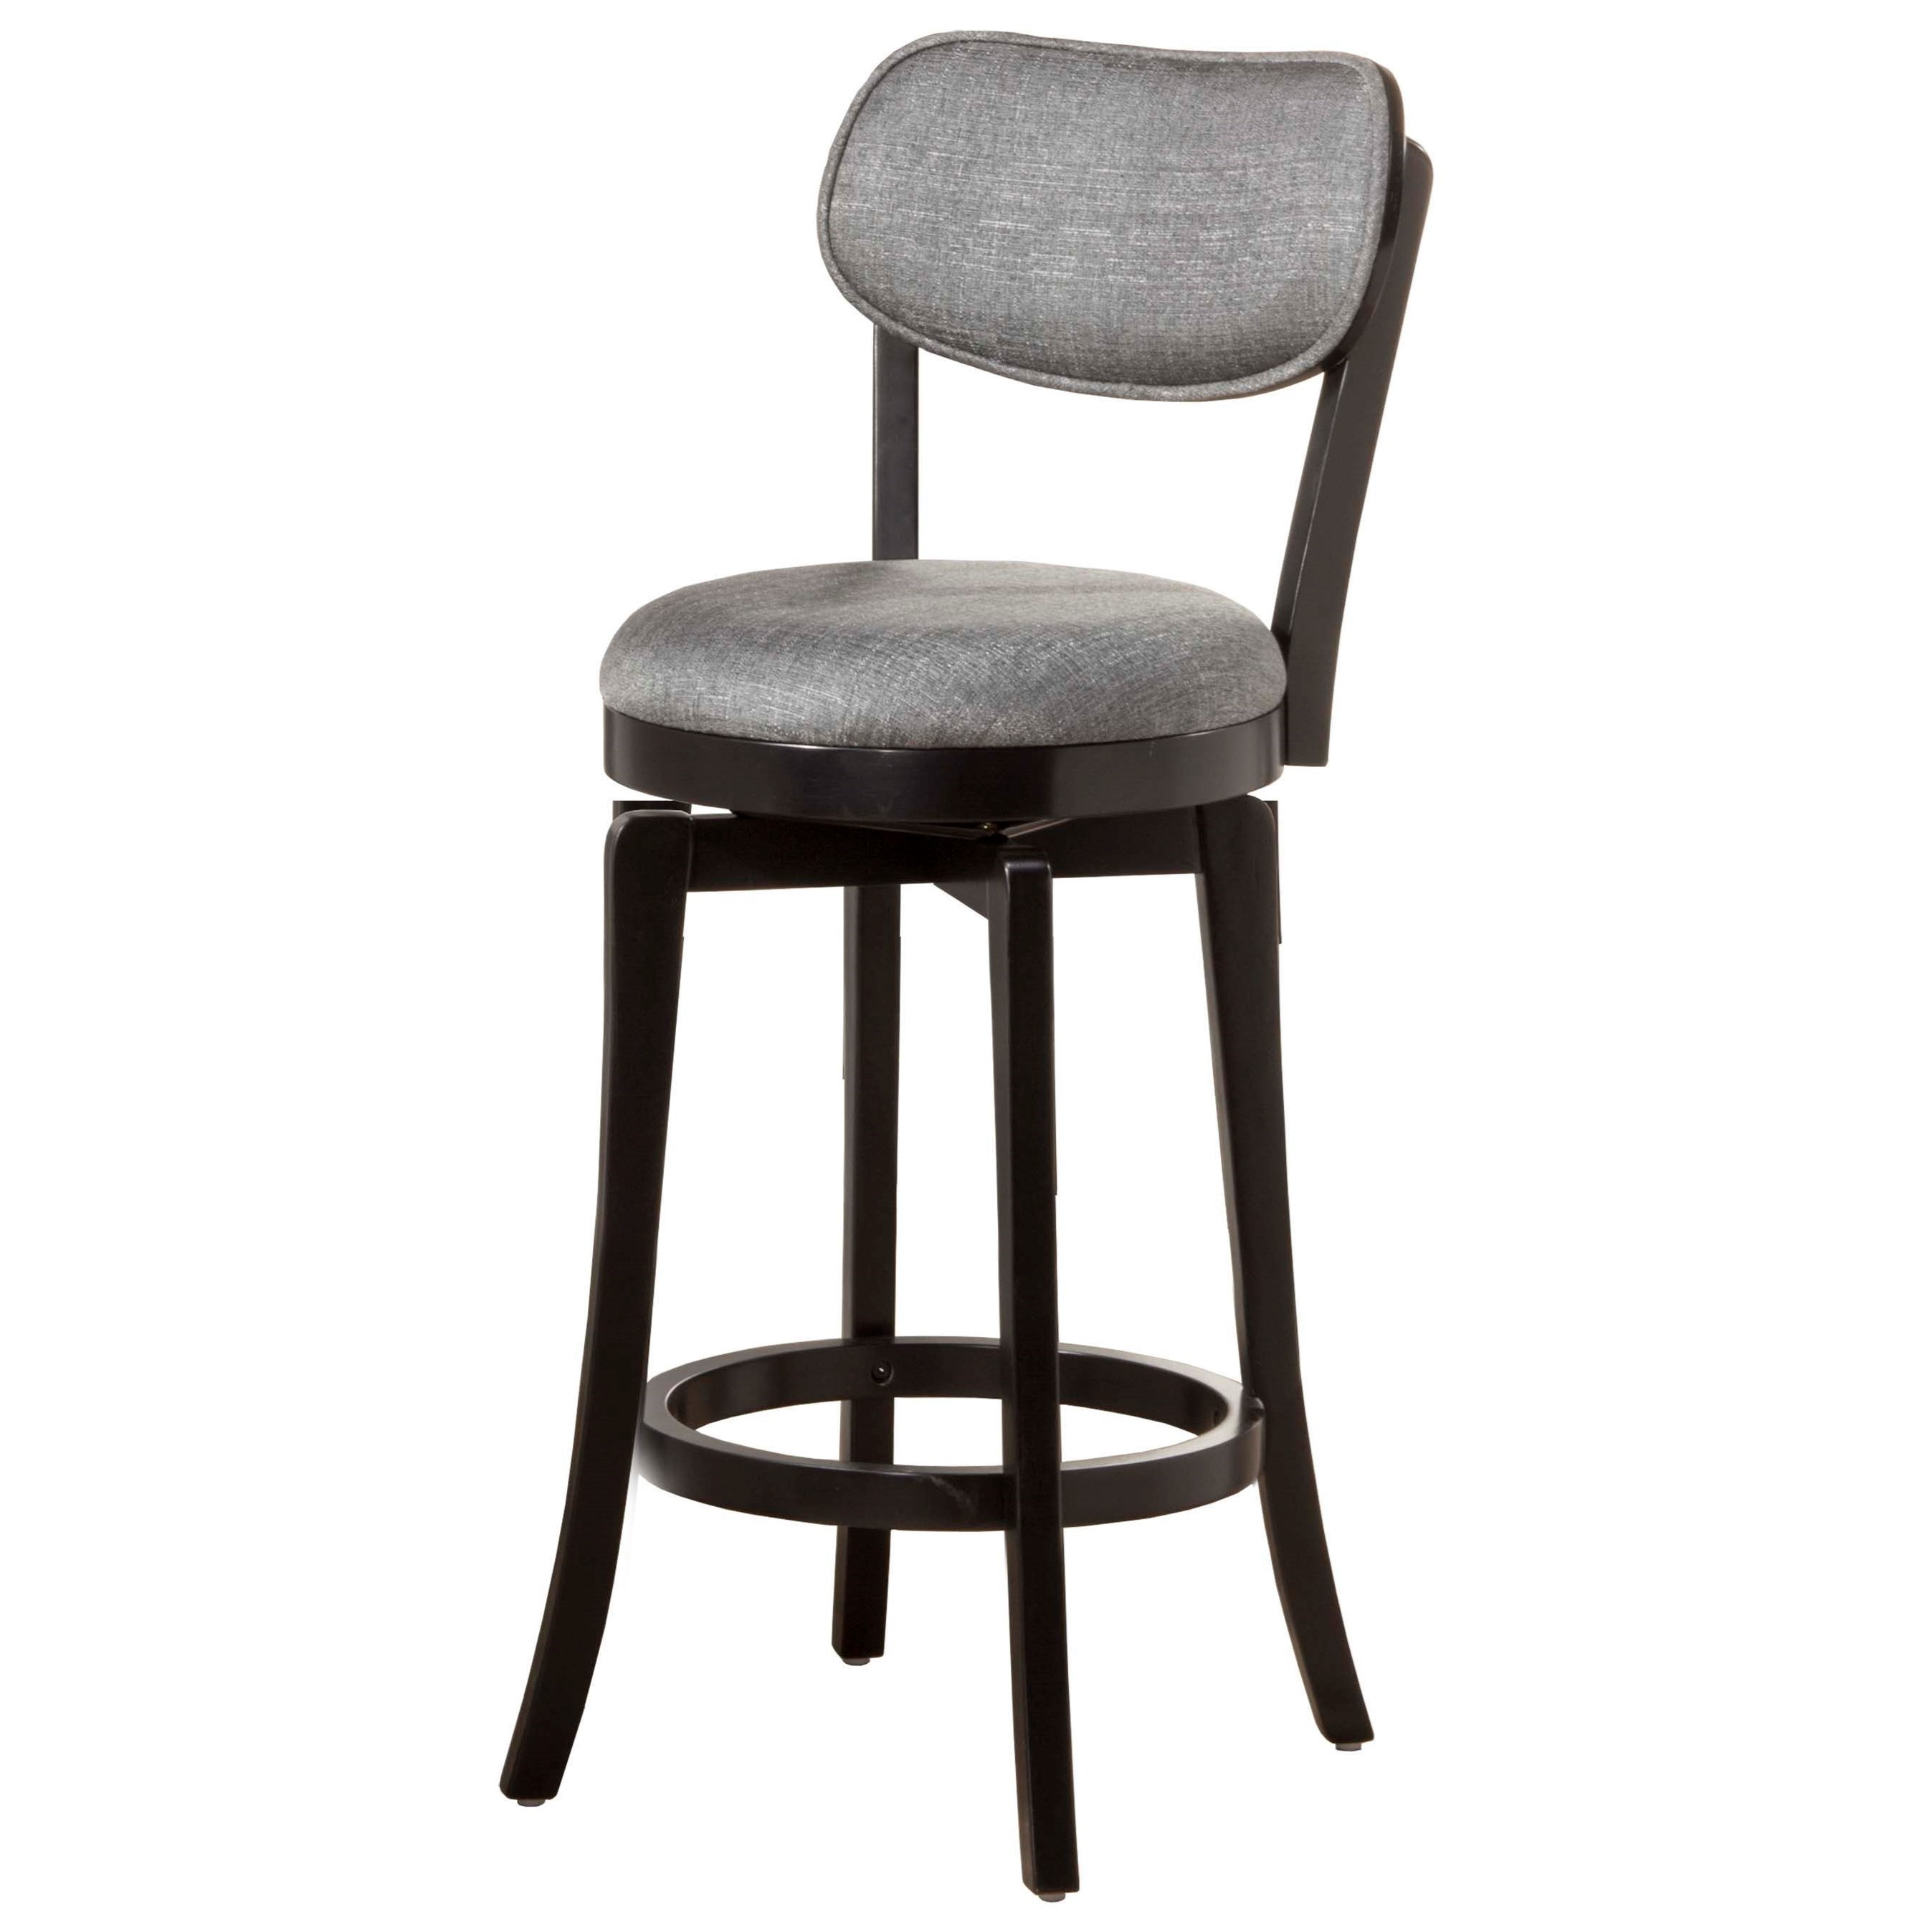 Wood Stools Swivel Counter Stool by Hillsdale at Simply Home by Lindy's